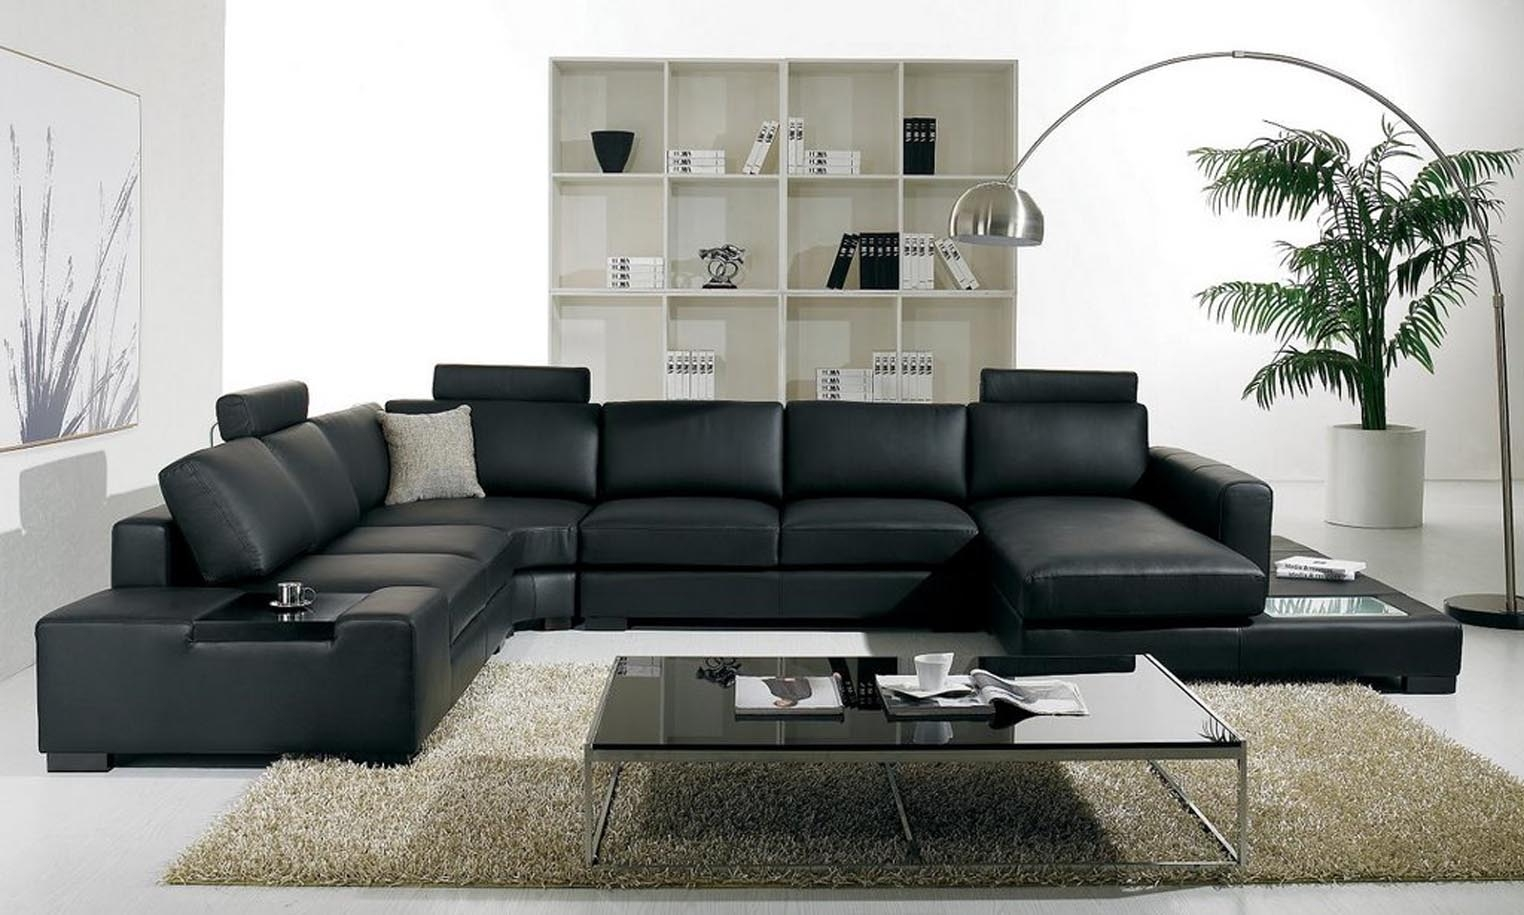 Leather Sofa Design Ideas 2016